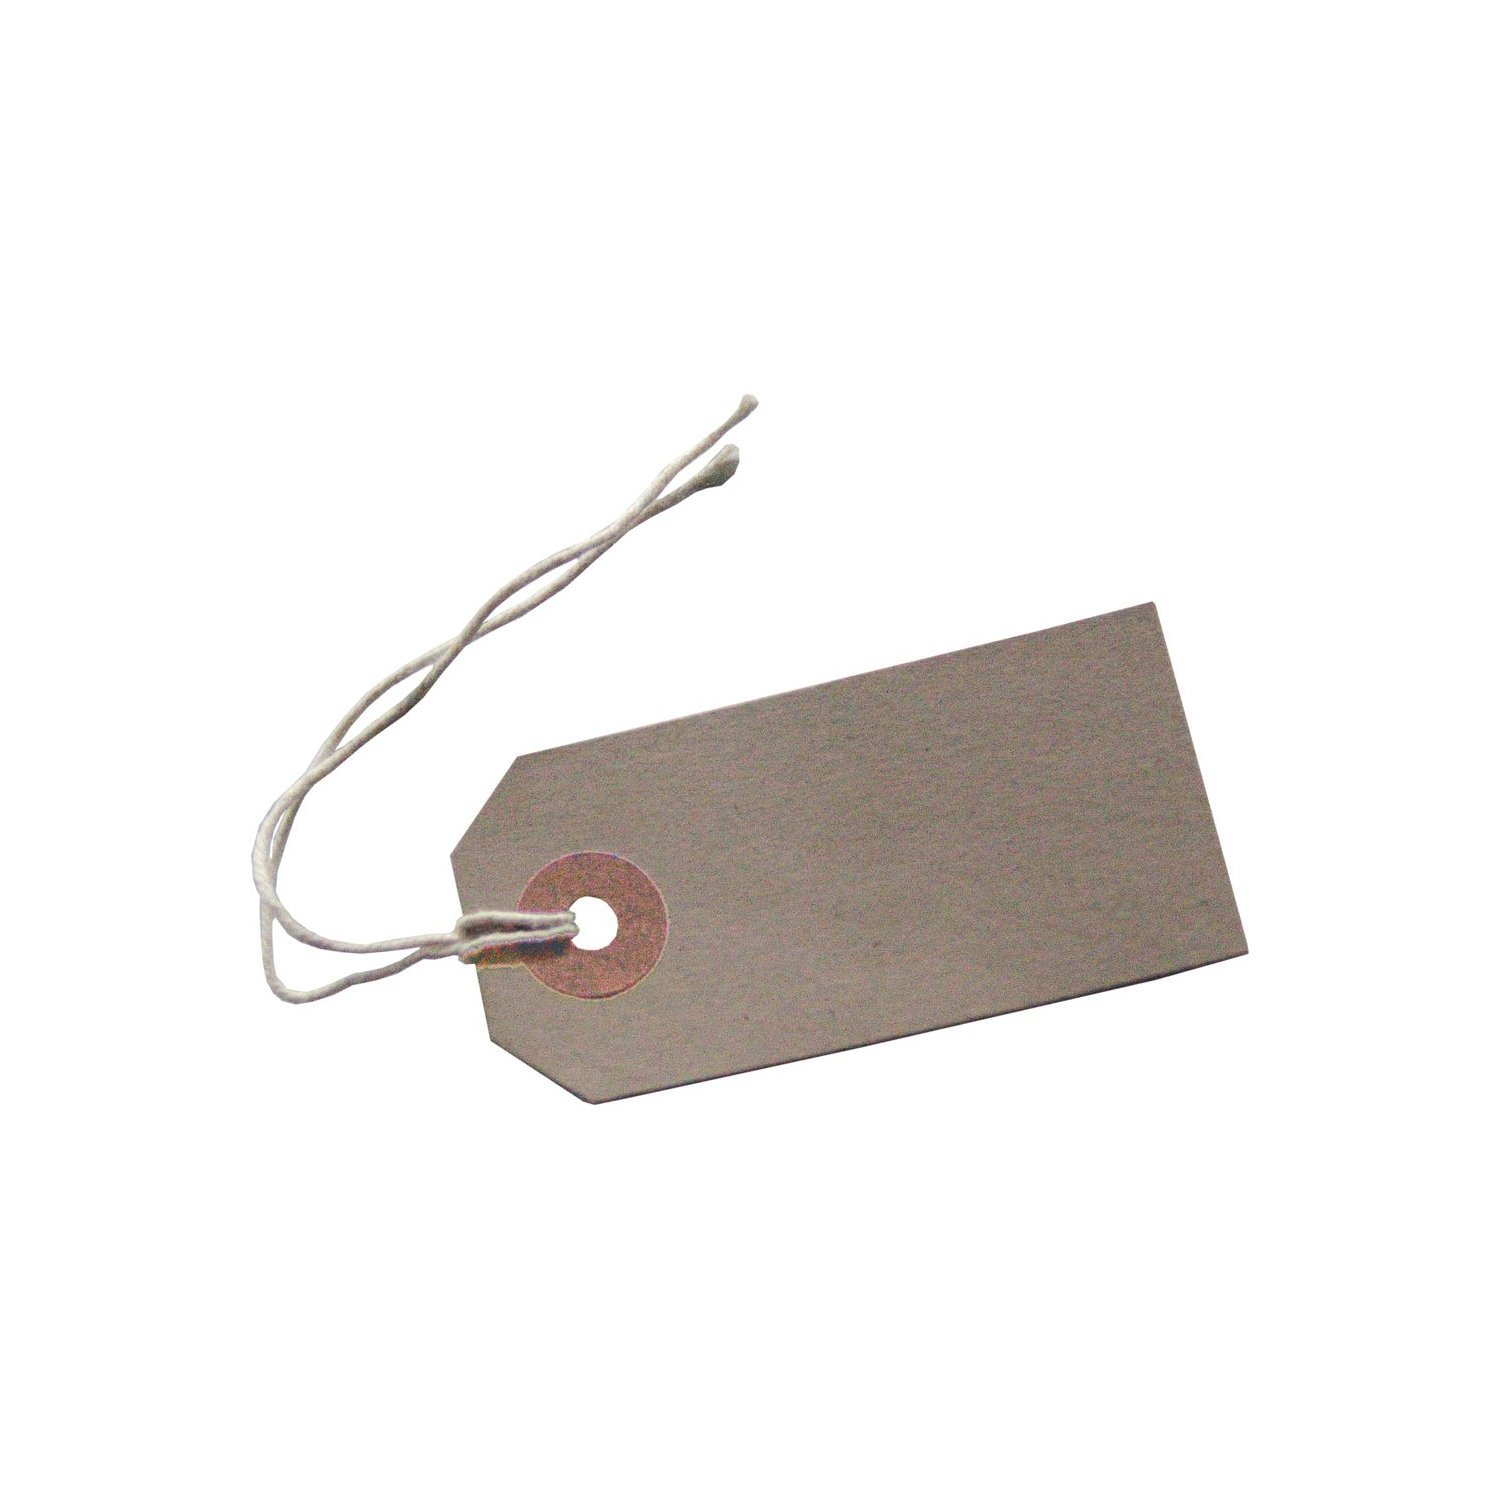 100 Reinforced Brown Buff Luggage Tags Labels with String Strung Suitcase Ties 96 x 48mm -